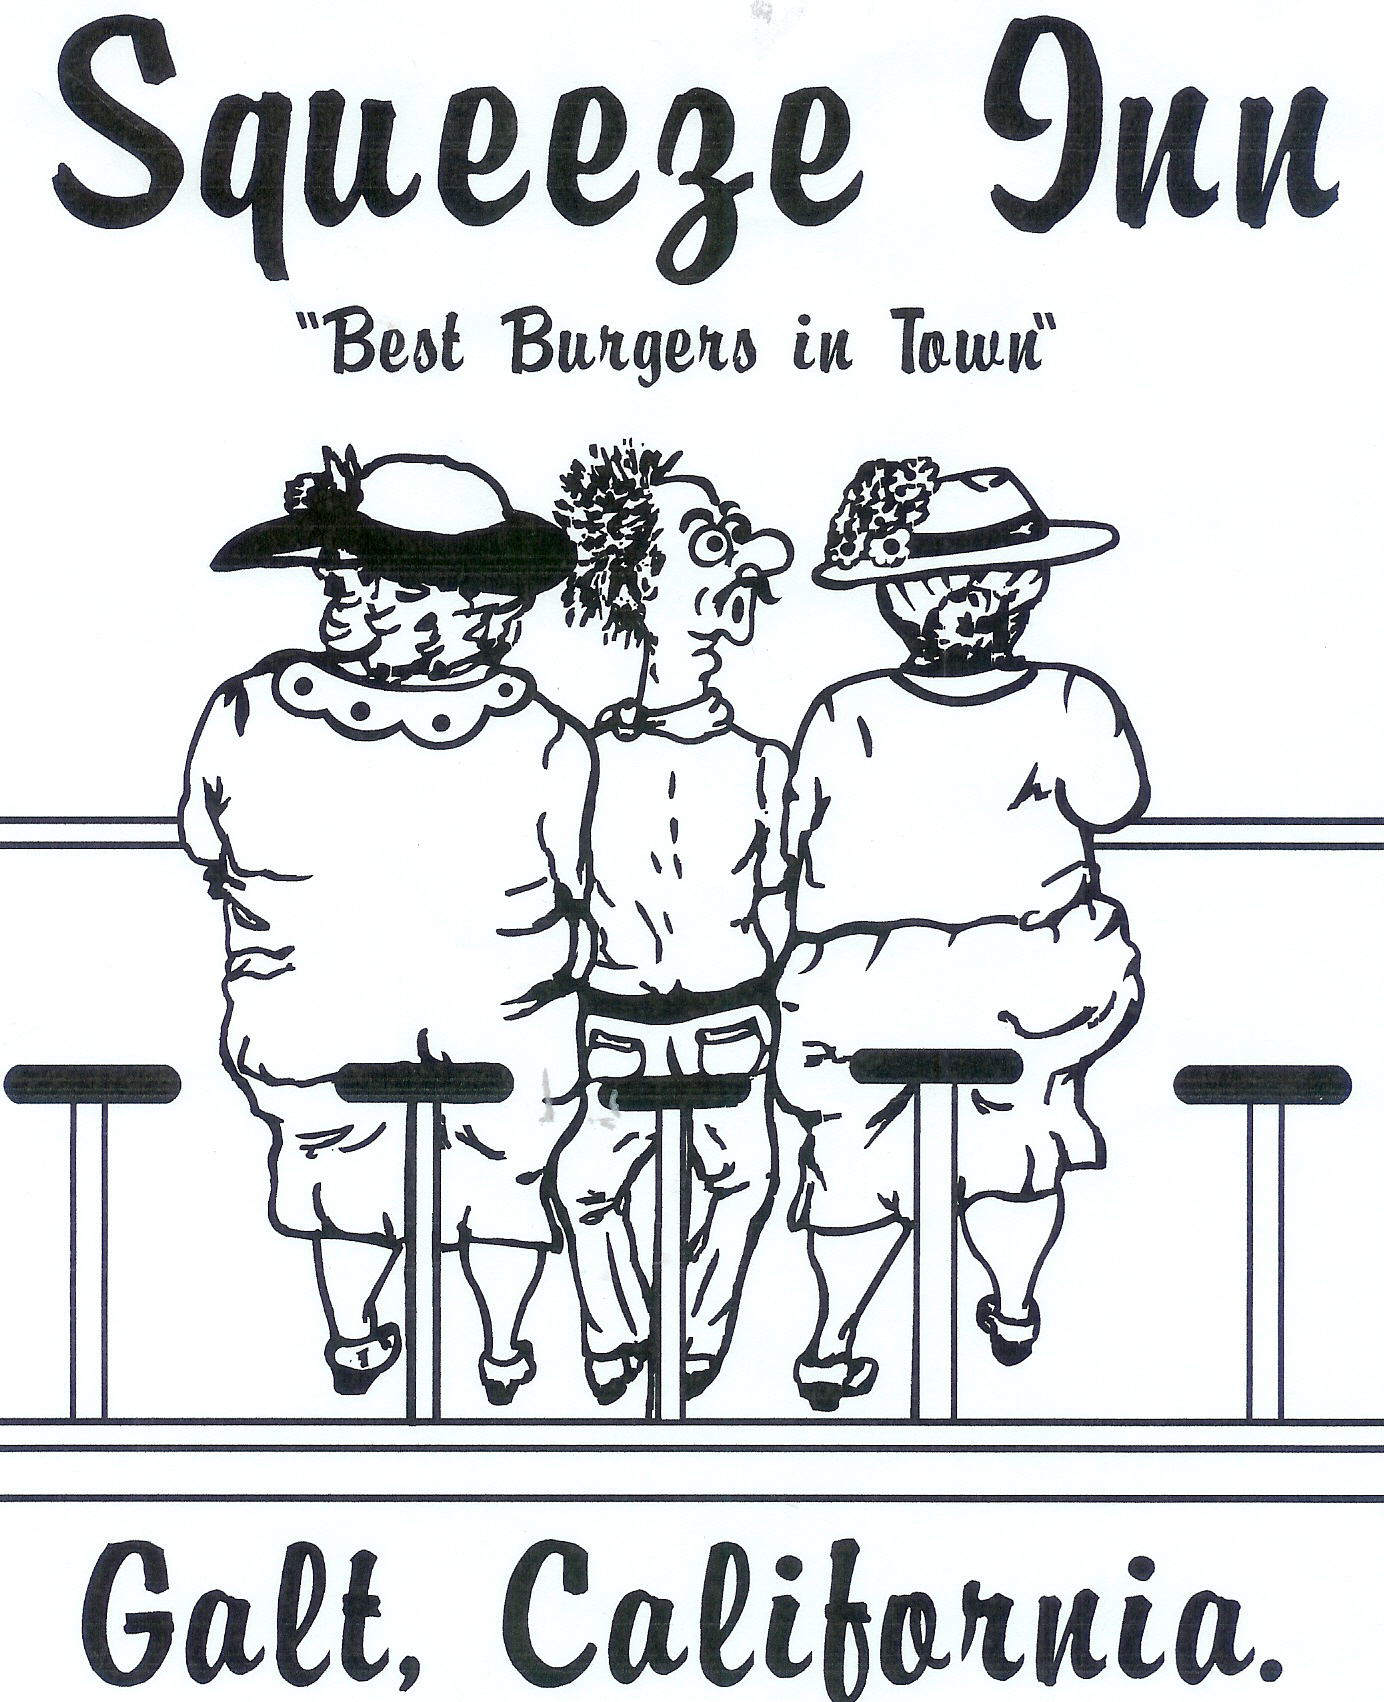 """Squeeze Burger logo, """"Squeeze Inn 'Best Burgers in Town' Galt, California"""" with caricature of three people sitting"""